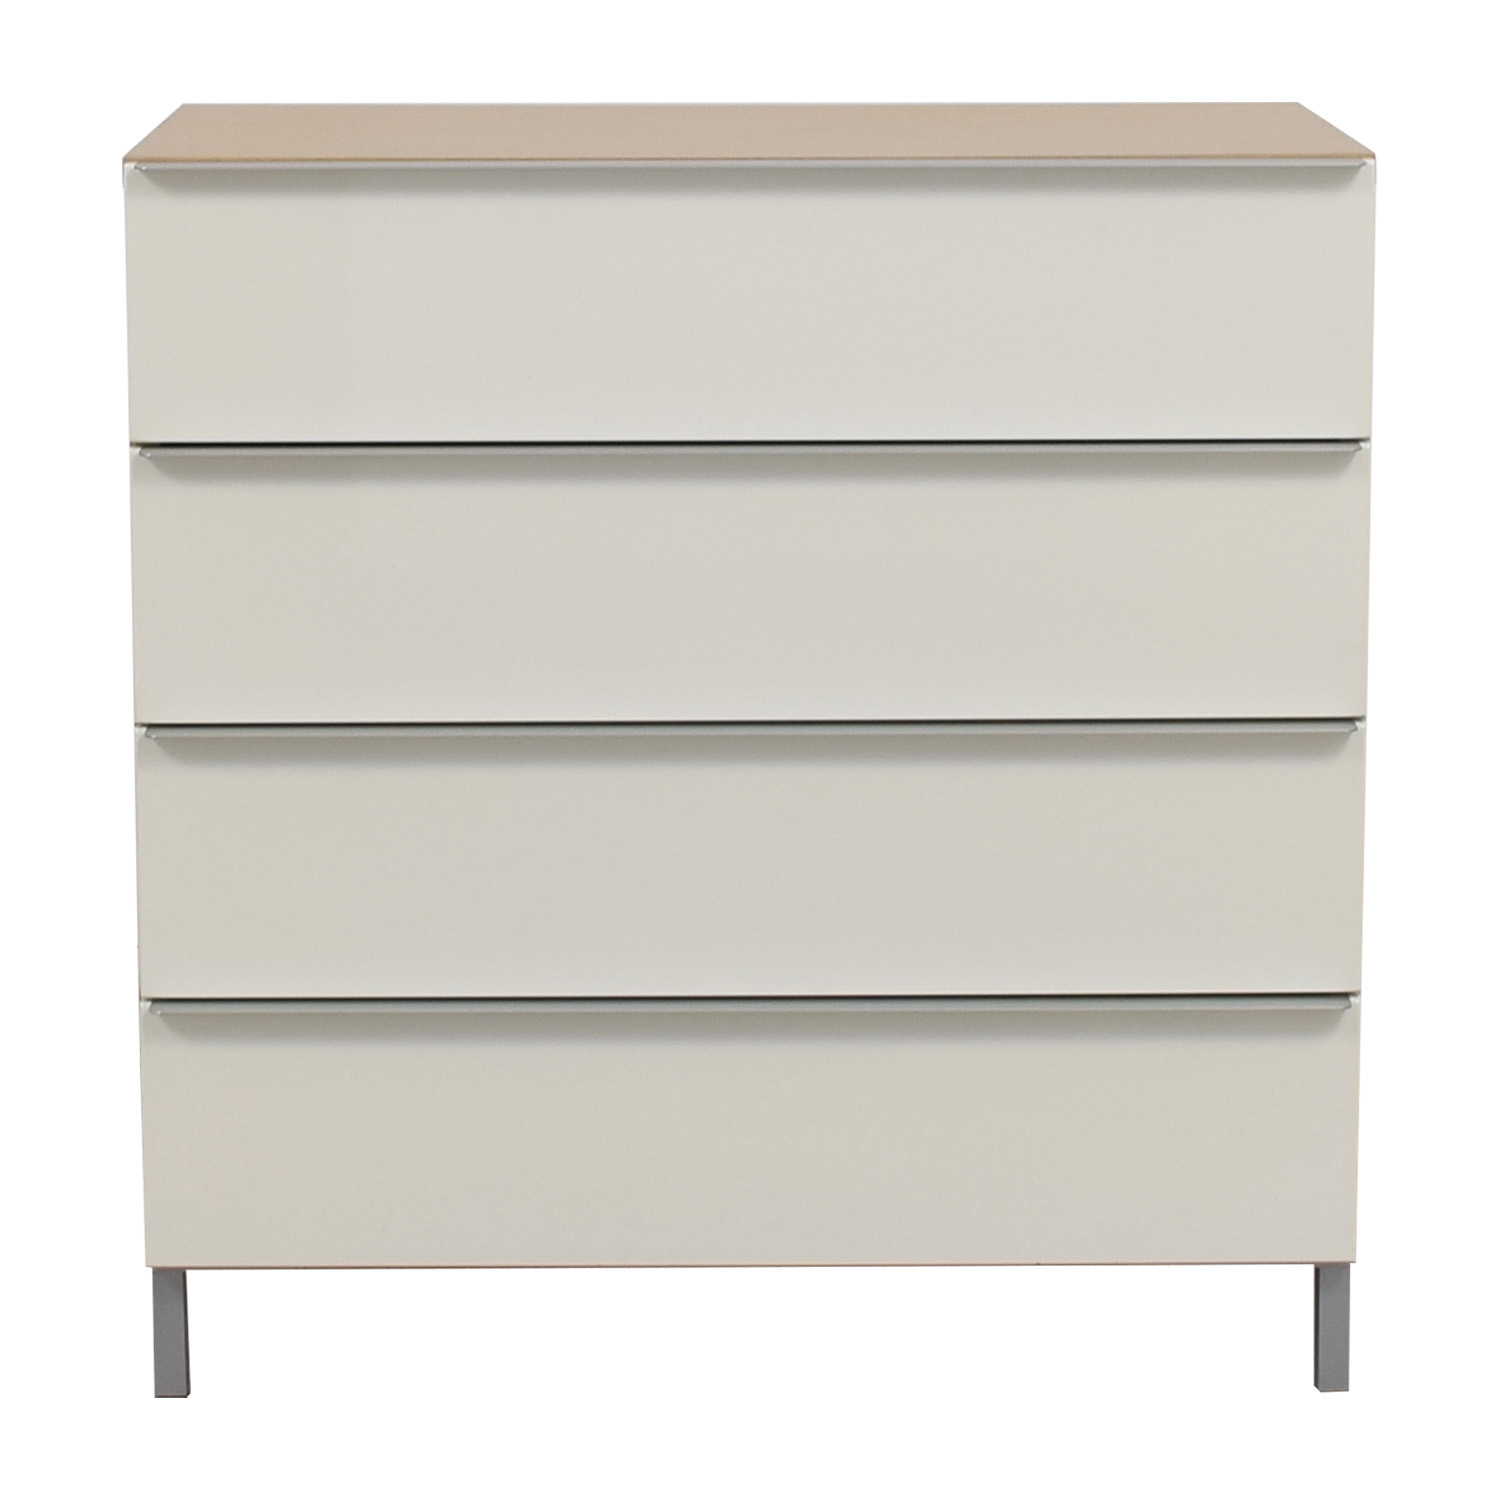 White and Tan Four-Drawer Chest of Drawers used